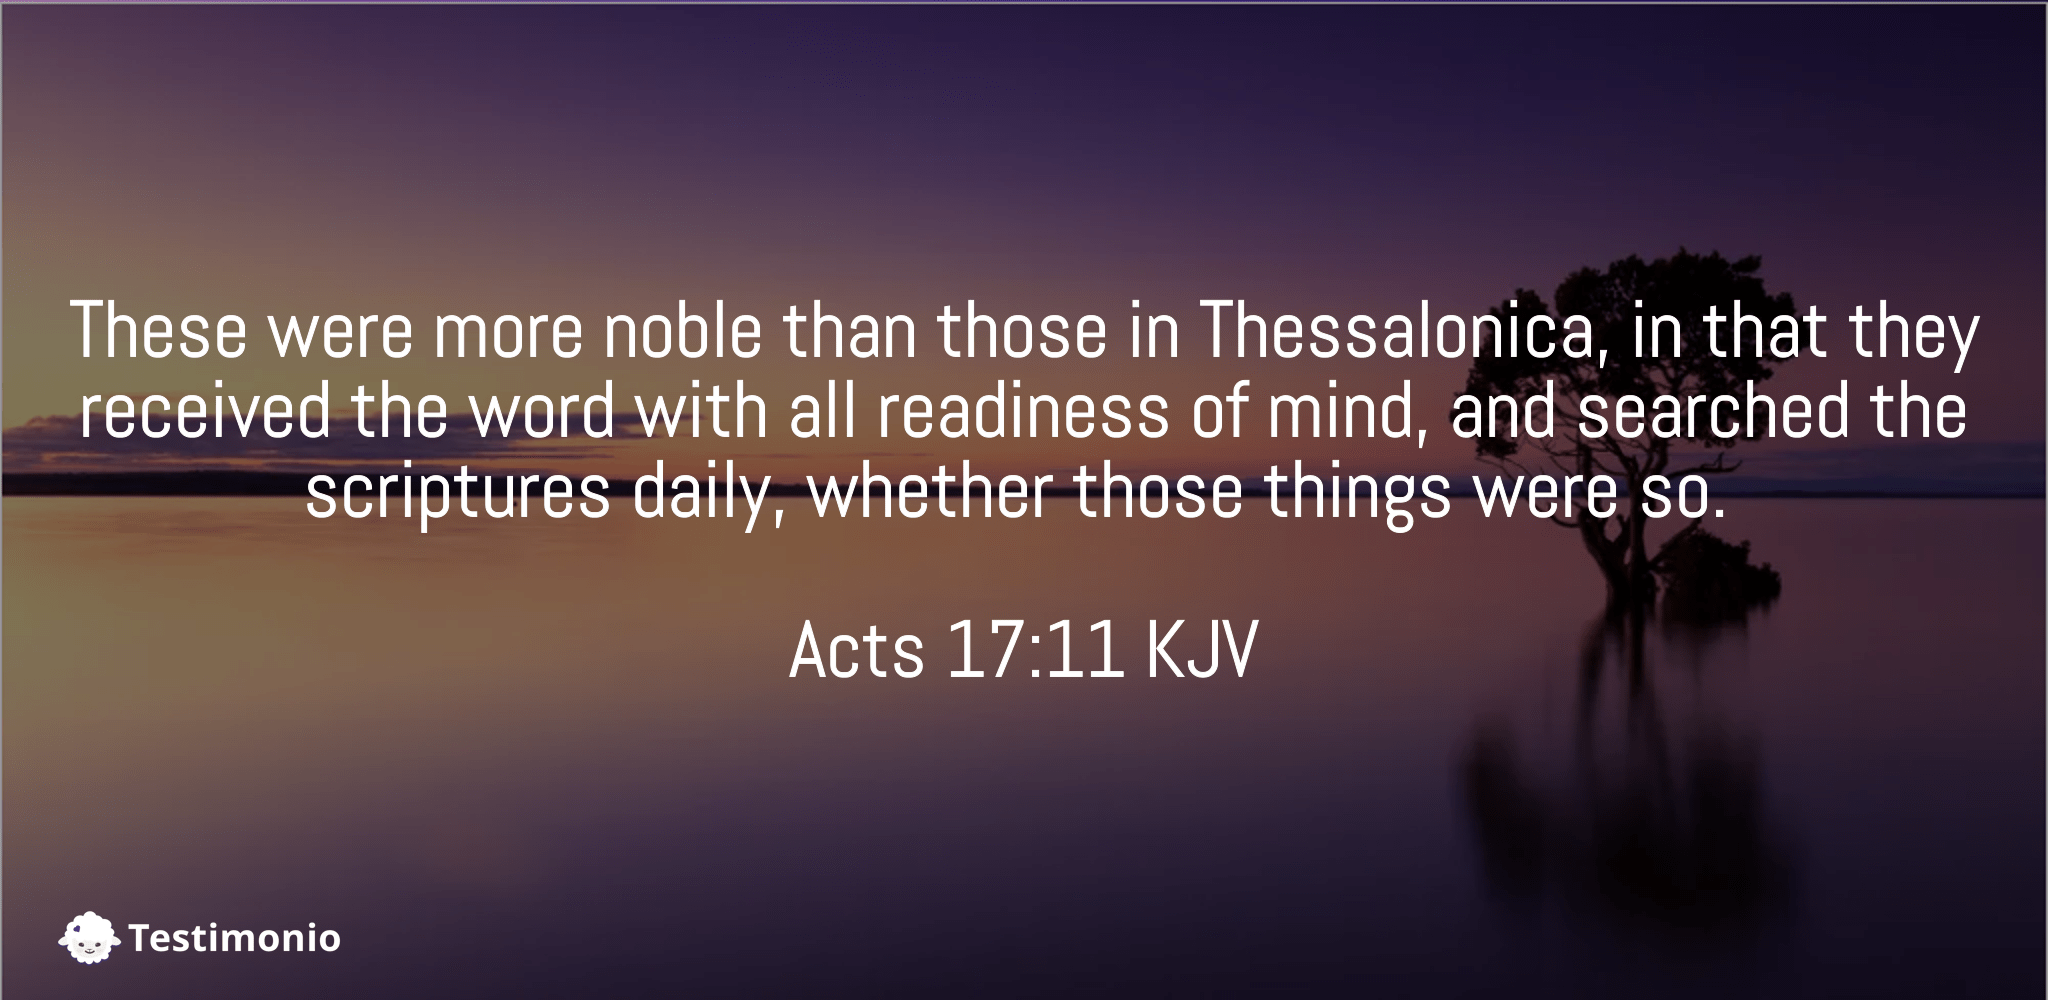 Acts 17:11